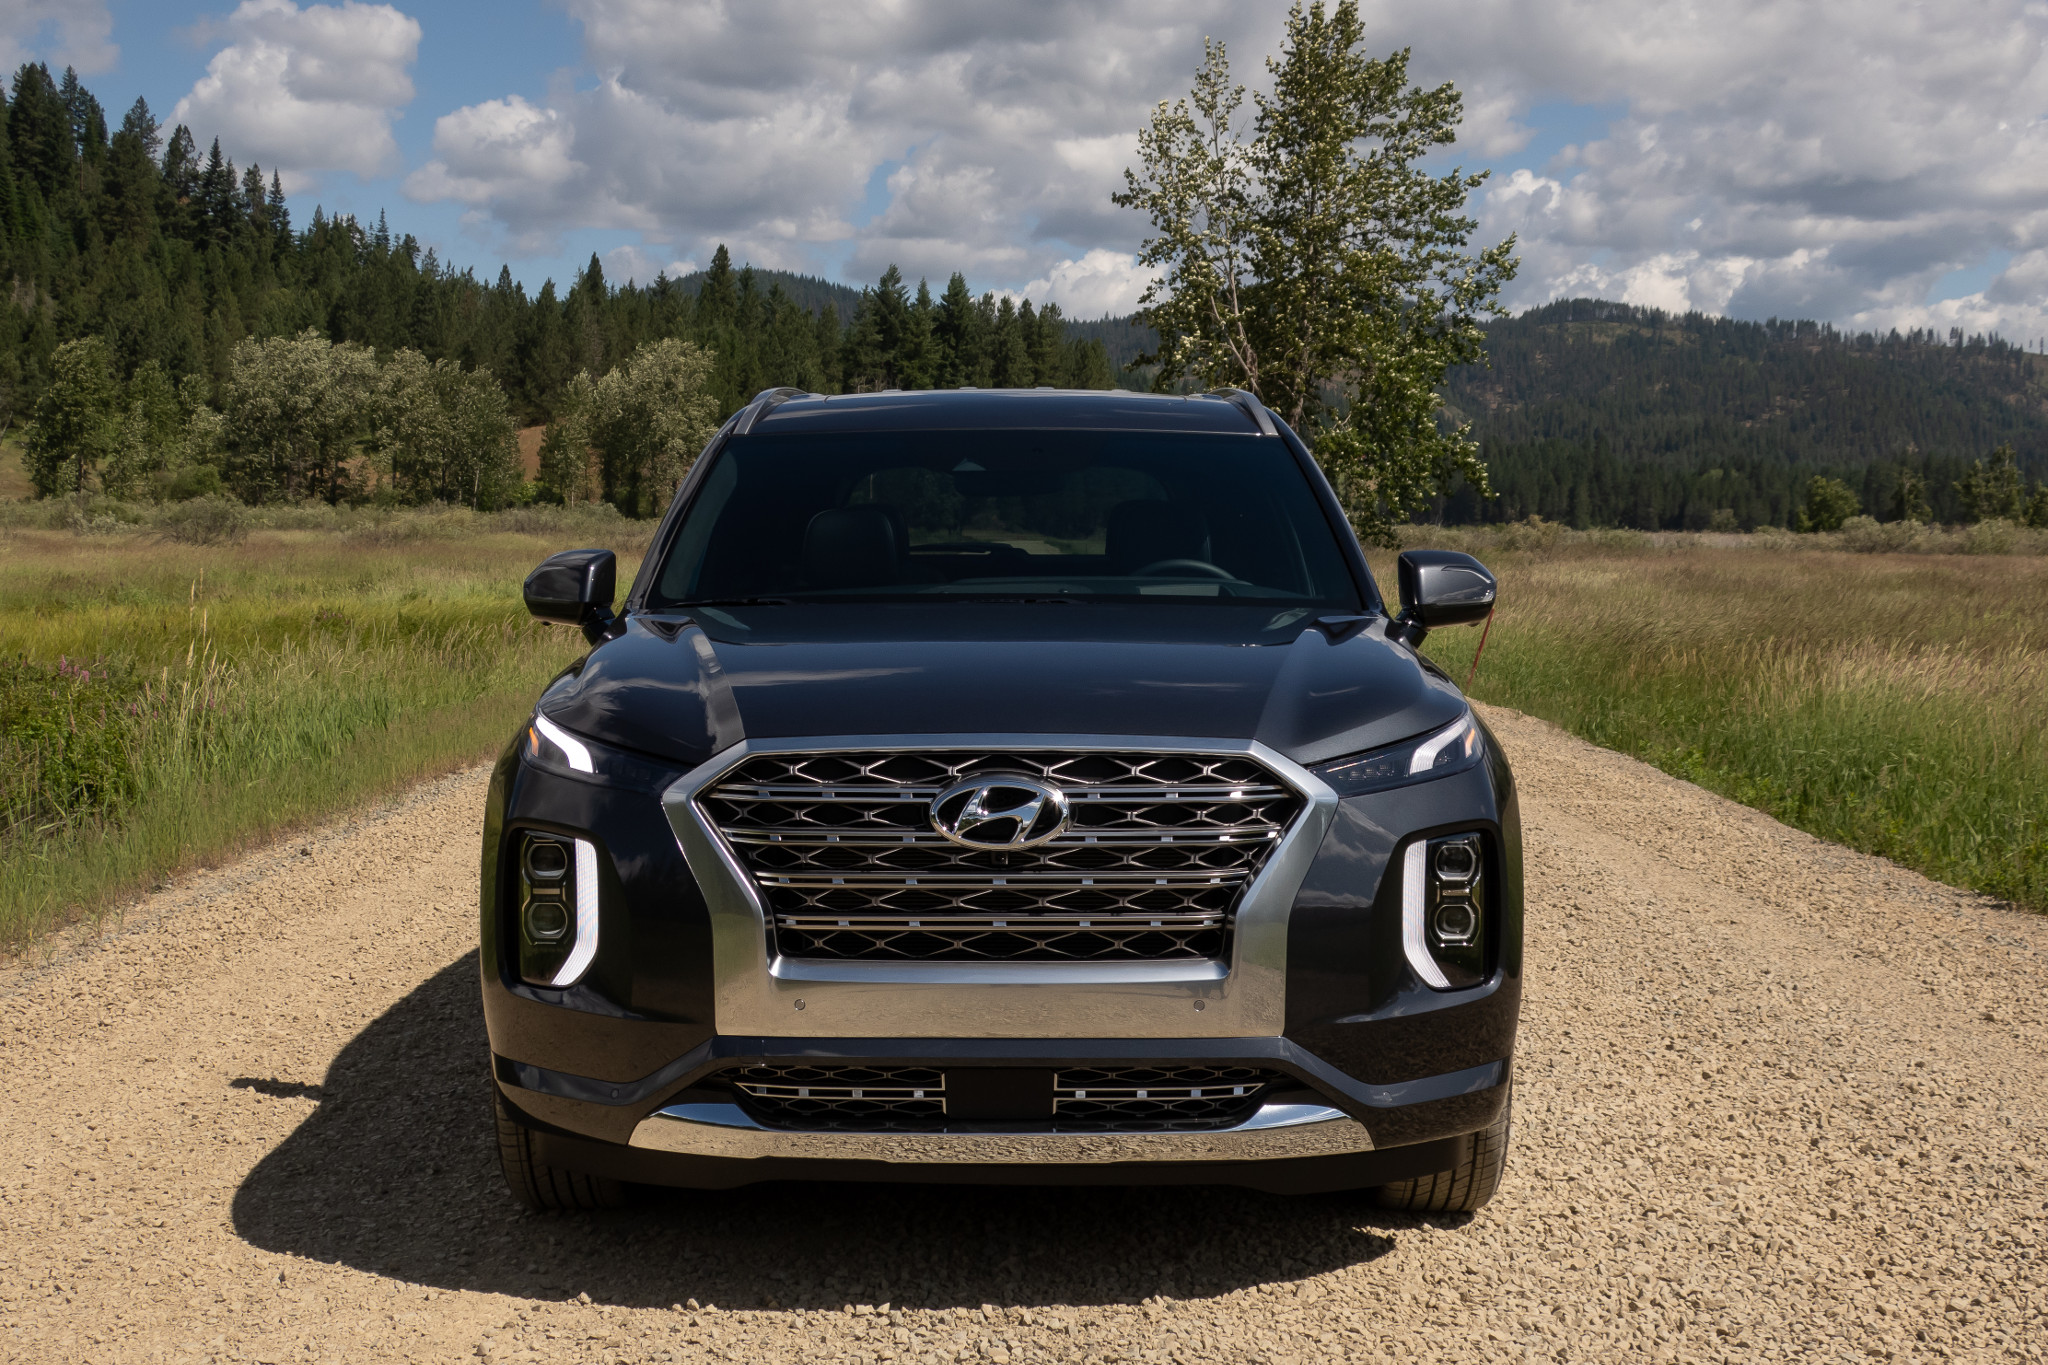 2020 Hyundai Palisade: Design, Specs, Release >> Top 5 Reviews And Videos Of The Week 2020 Hyundai Palisade Stands